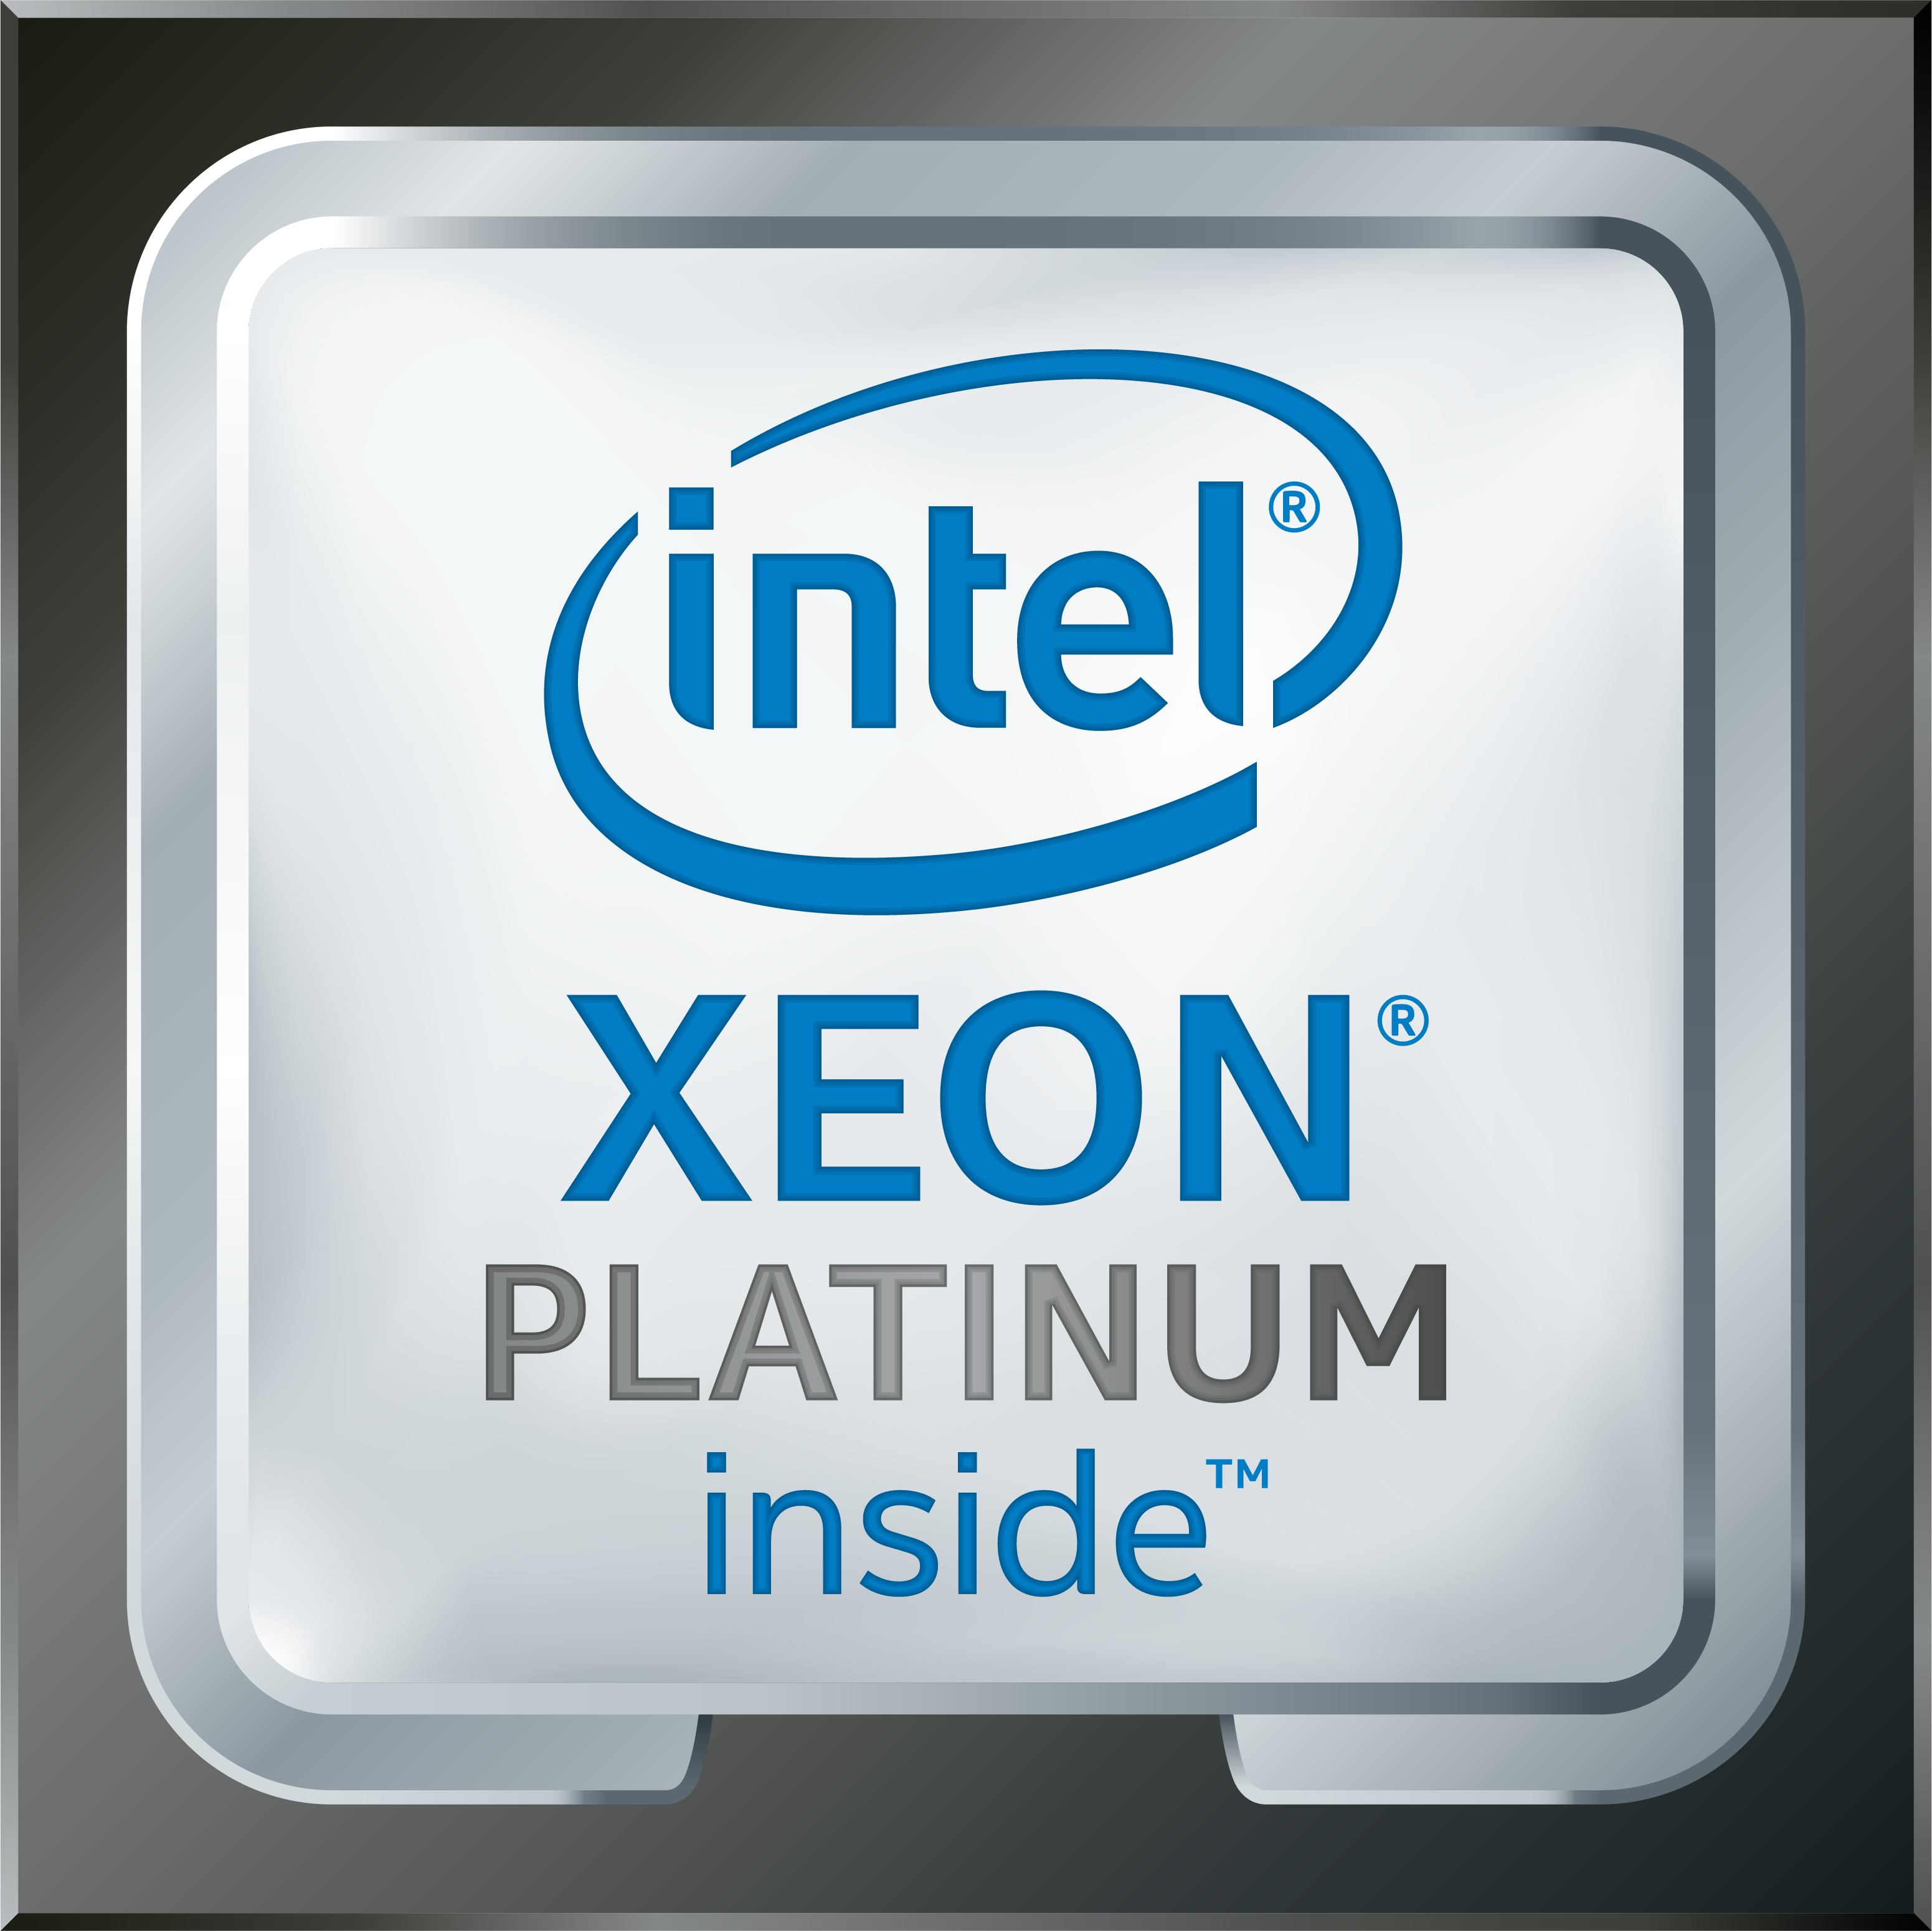 Intel Xeon Platinum Logo High Res Transparent 2017